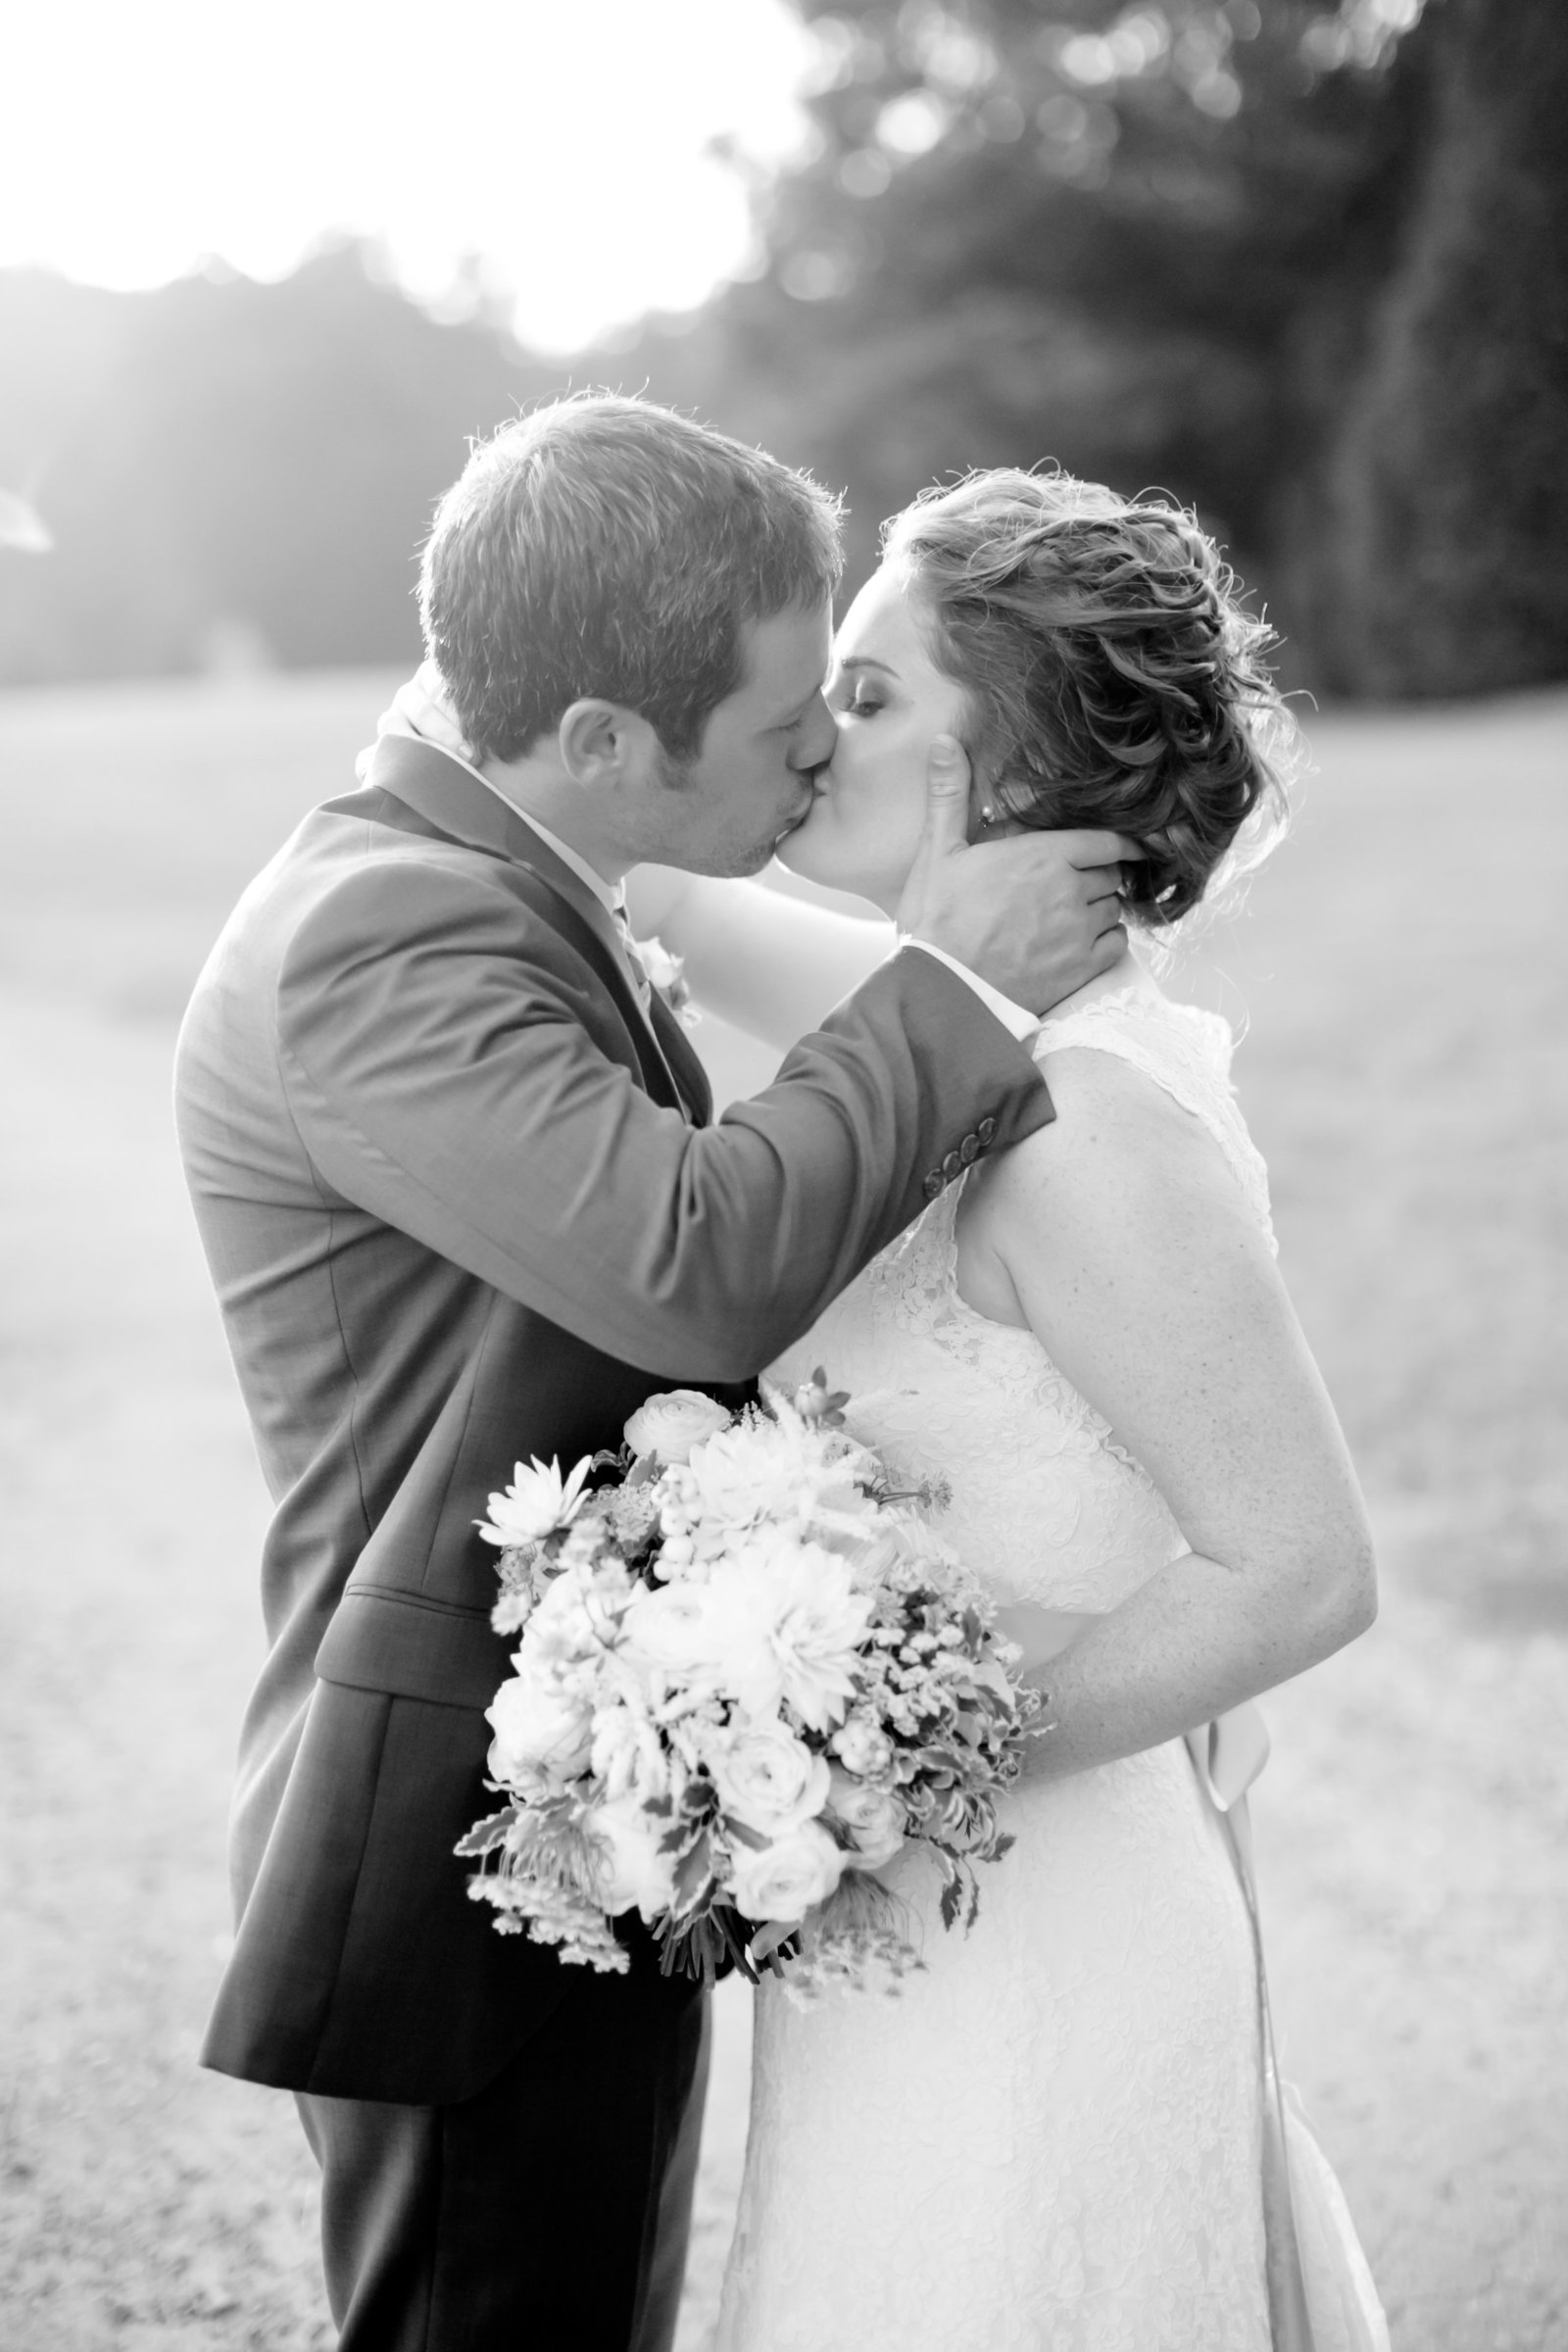 Carley Rehberg Photography - Wedding Photographer - Photo29